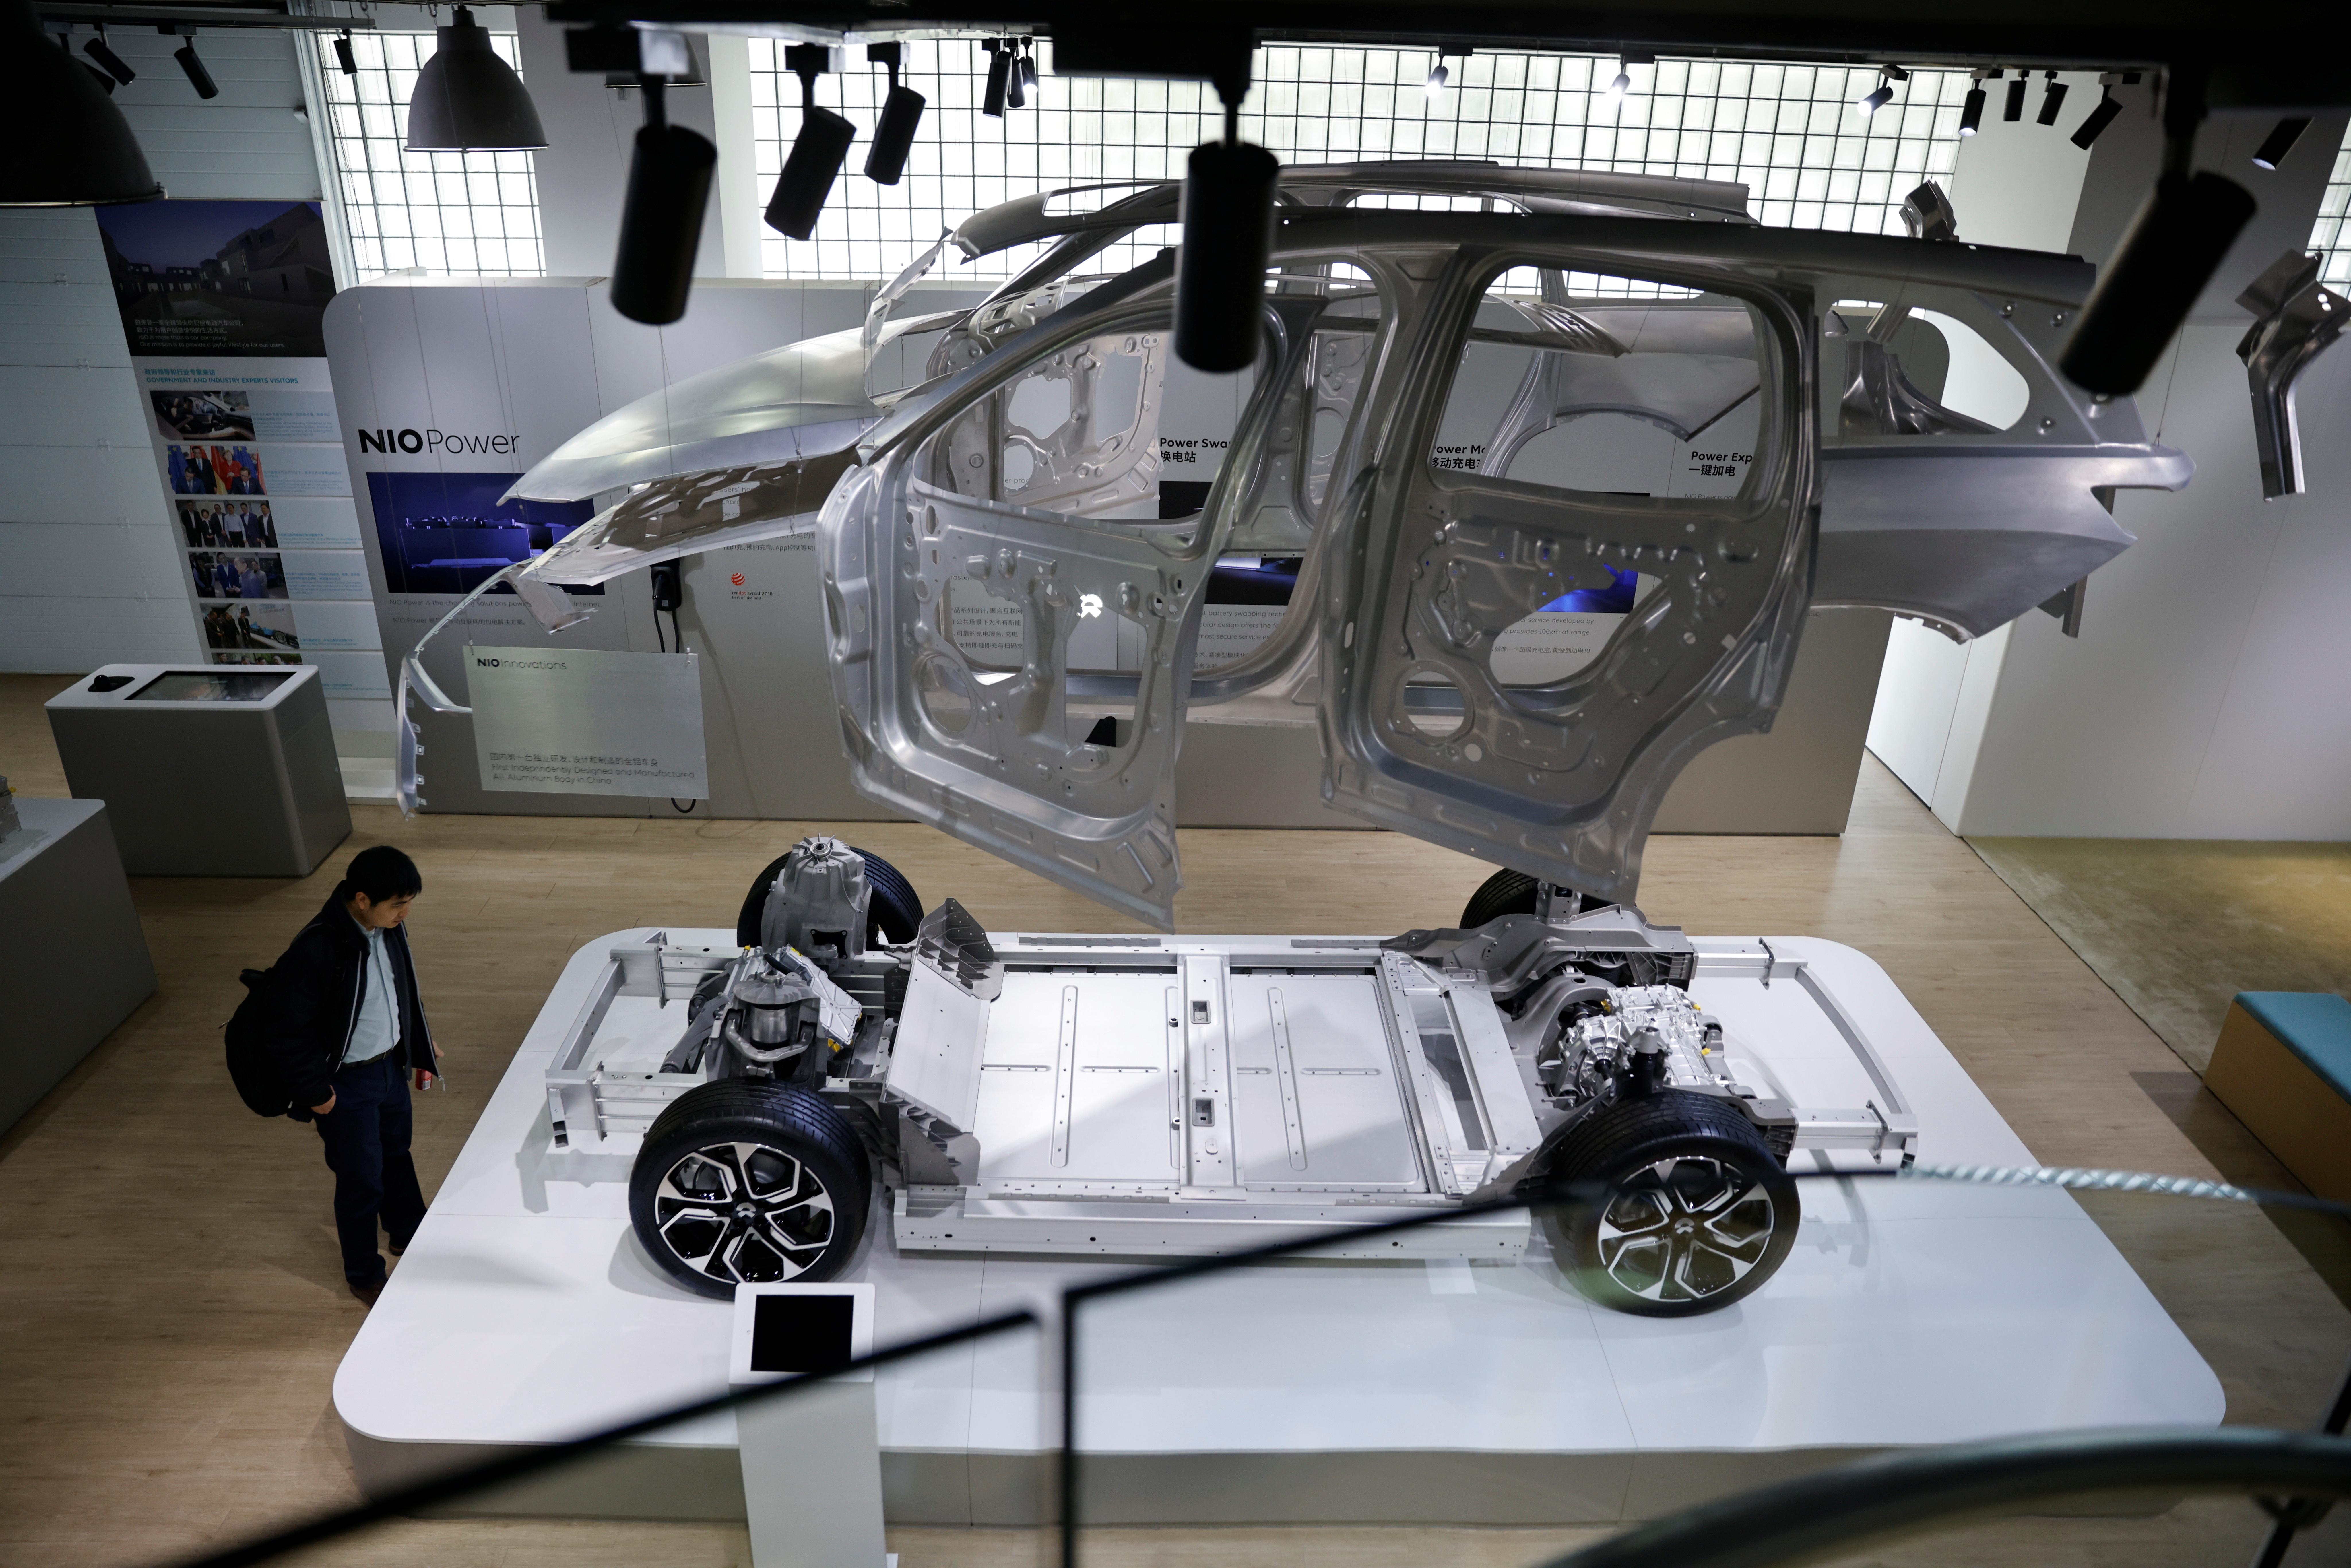 A model of a Nio electric car is displayed at a Nio office in Shanghai, China, March 24, 2021.  REUTERS/Aly Song